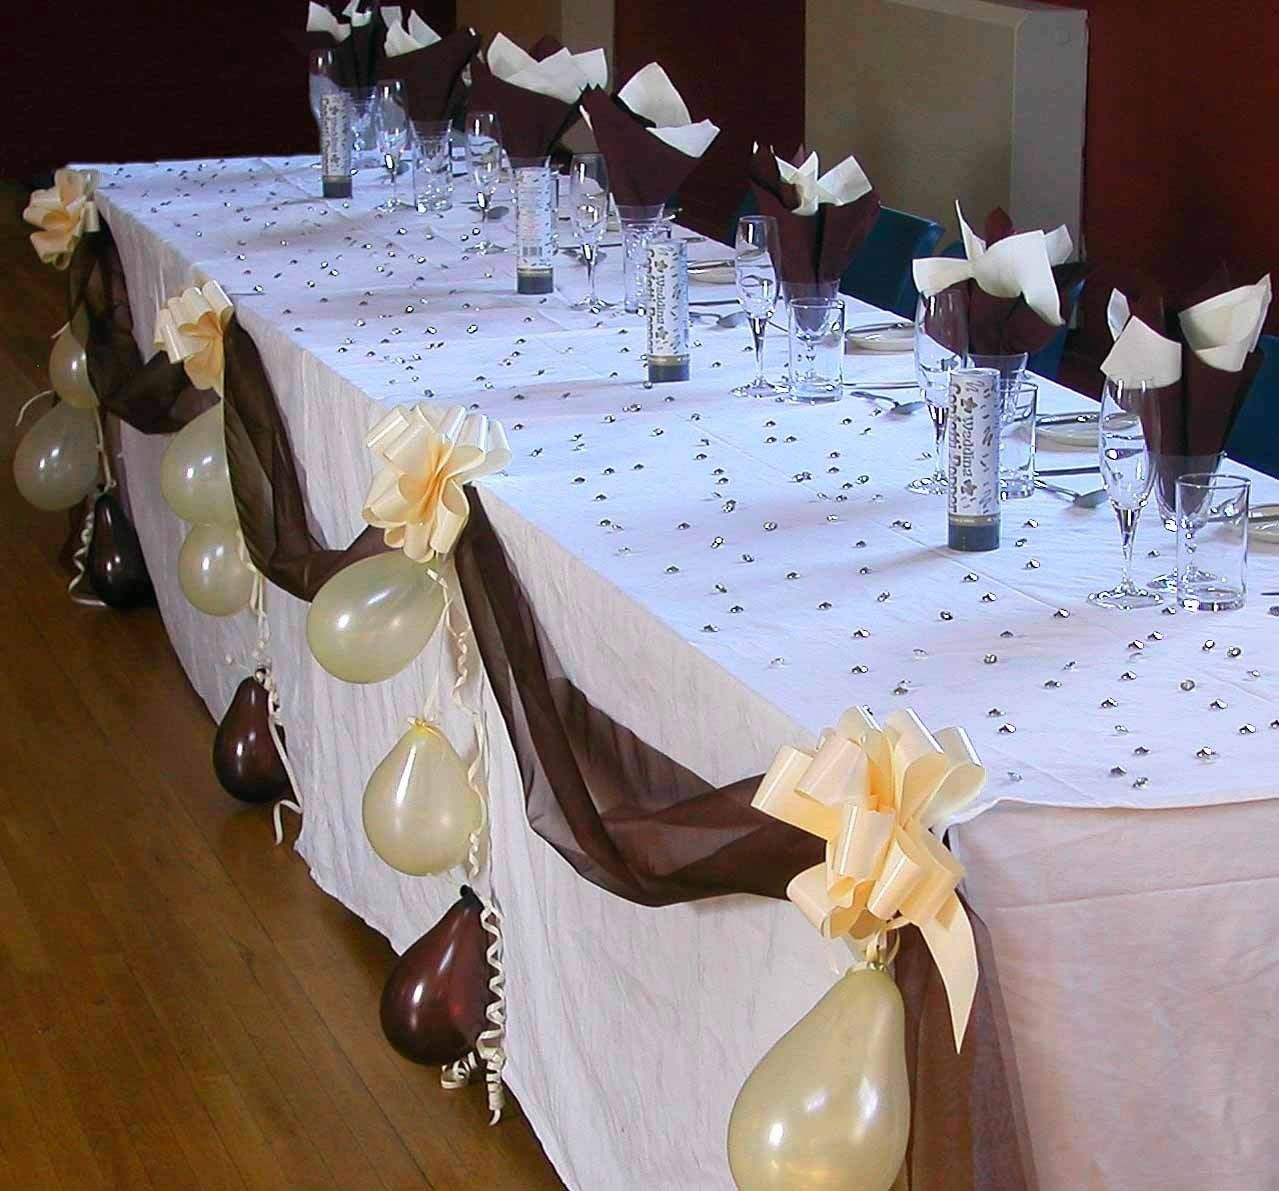 Wedding top table decoration kit organza fabric swags pull bows wedding top table decoration kit organza fabric swags pull bows balloons ebay junglespirit Choice Image